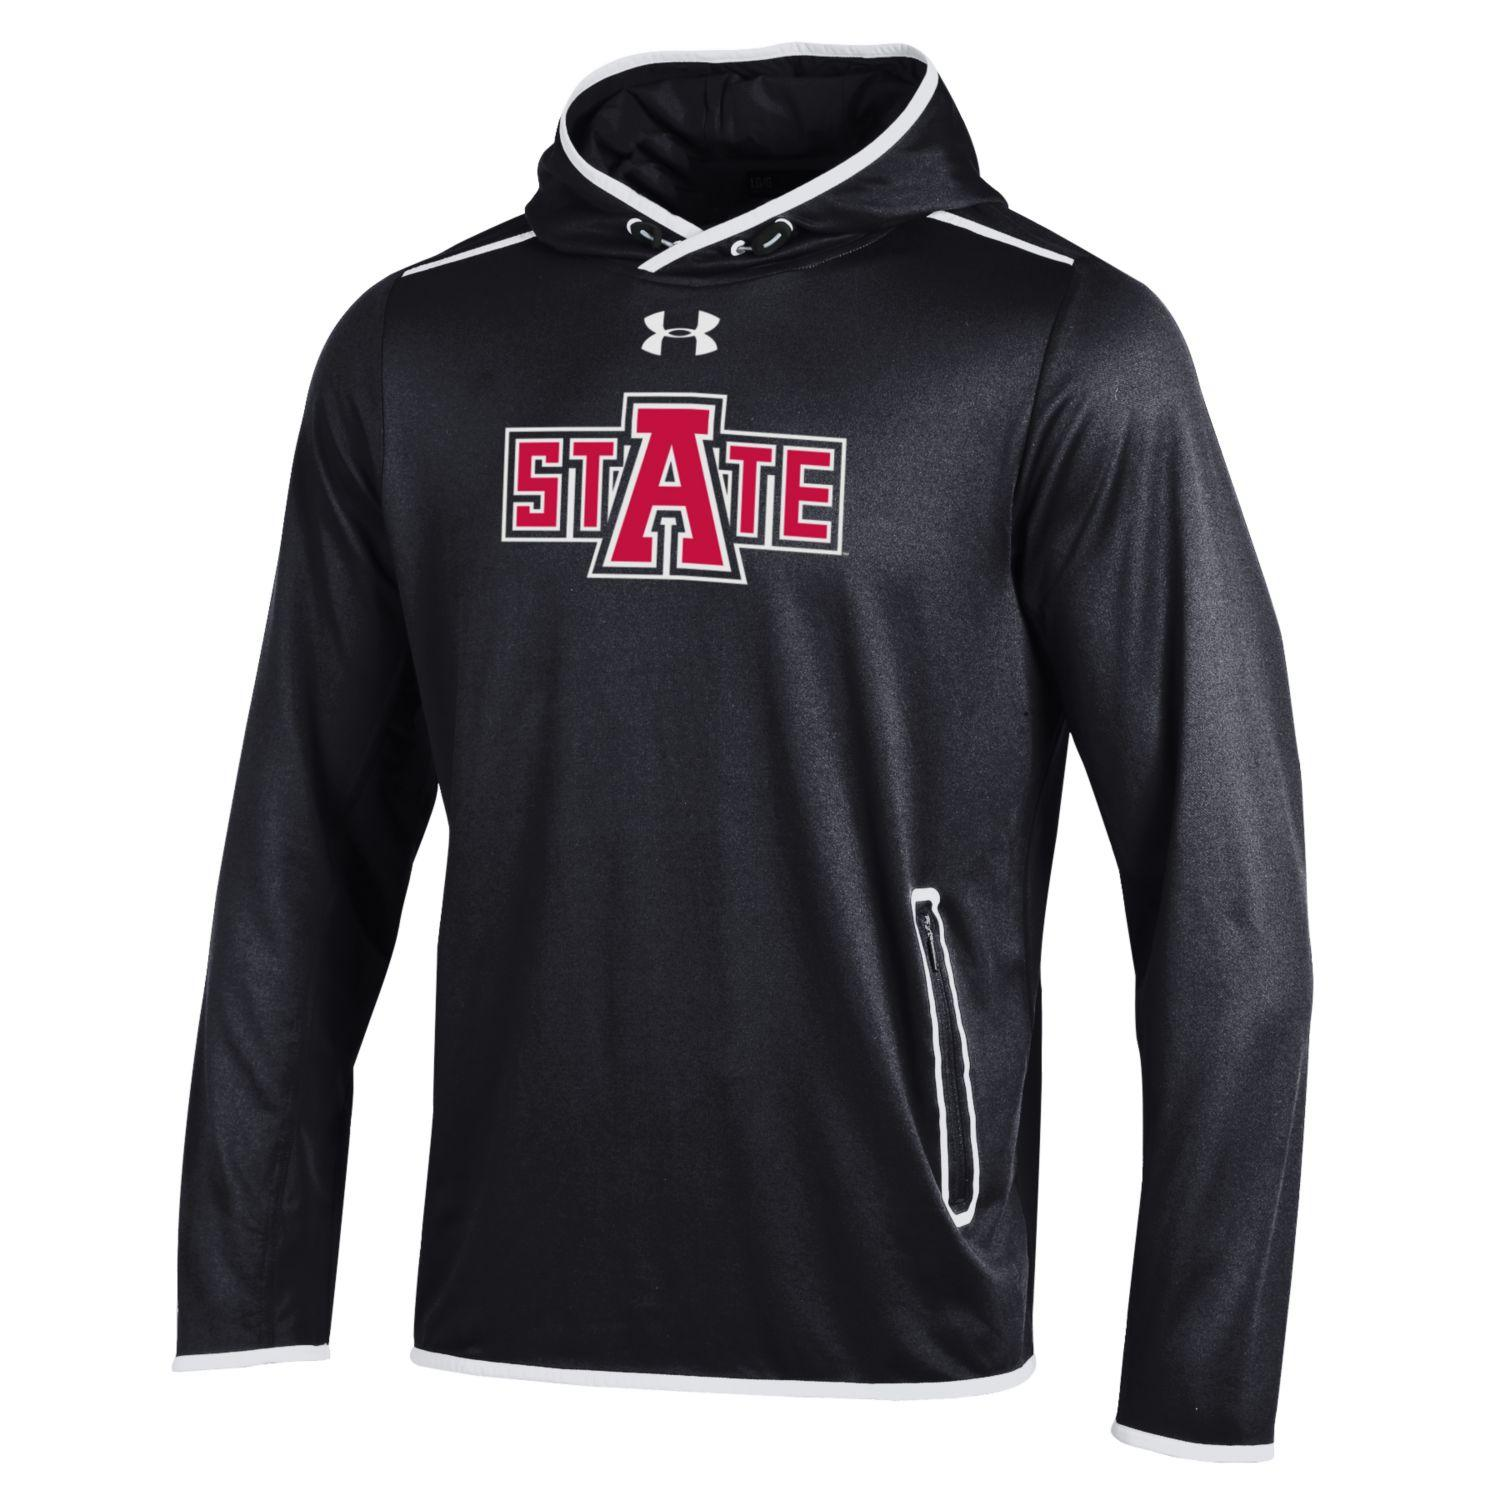 Arkansas State Player's Hoody